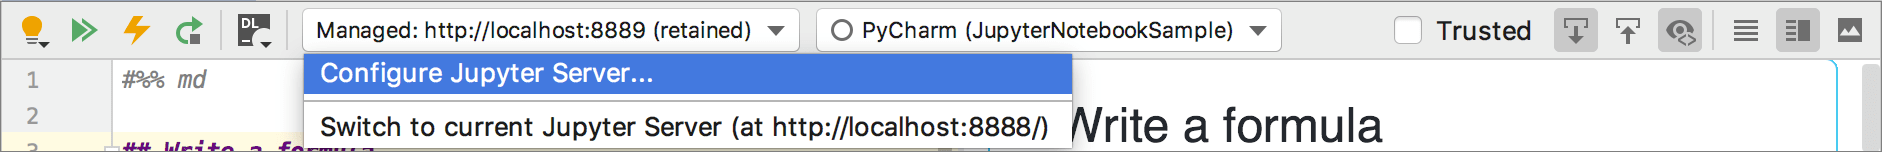 Switch to the current Jupyter Server